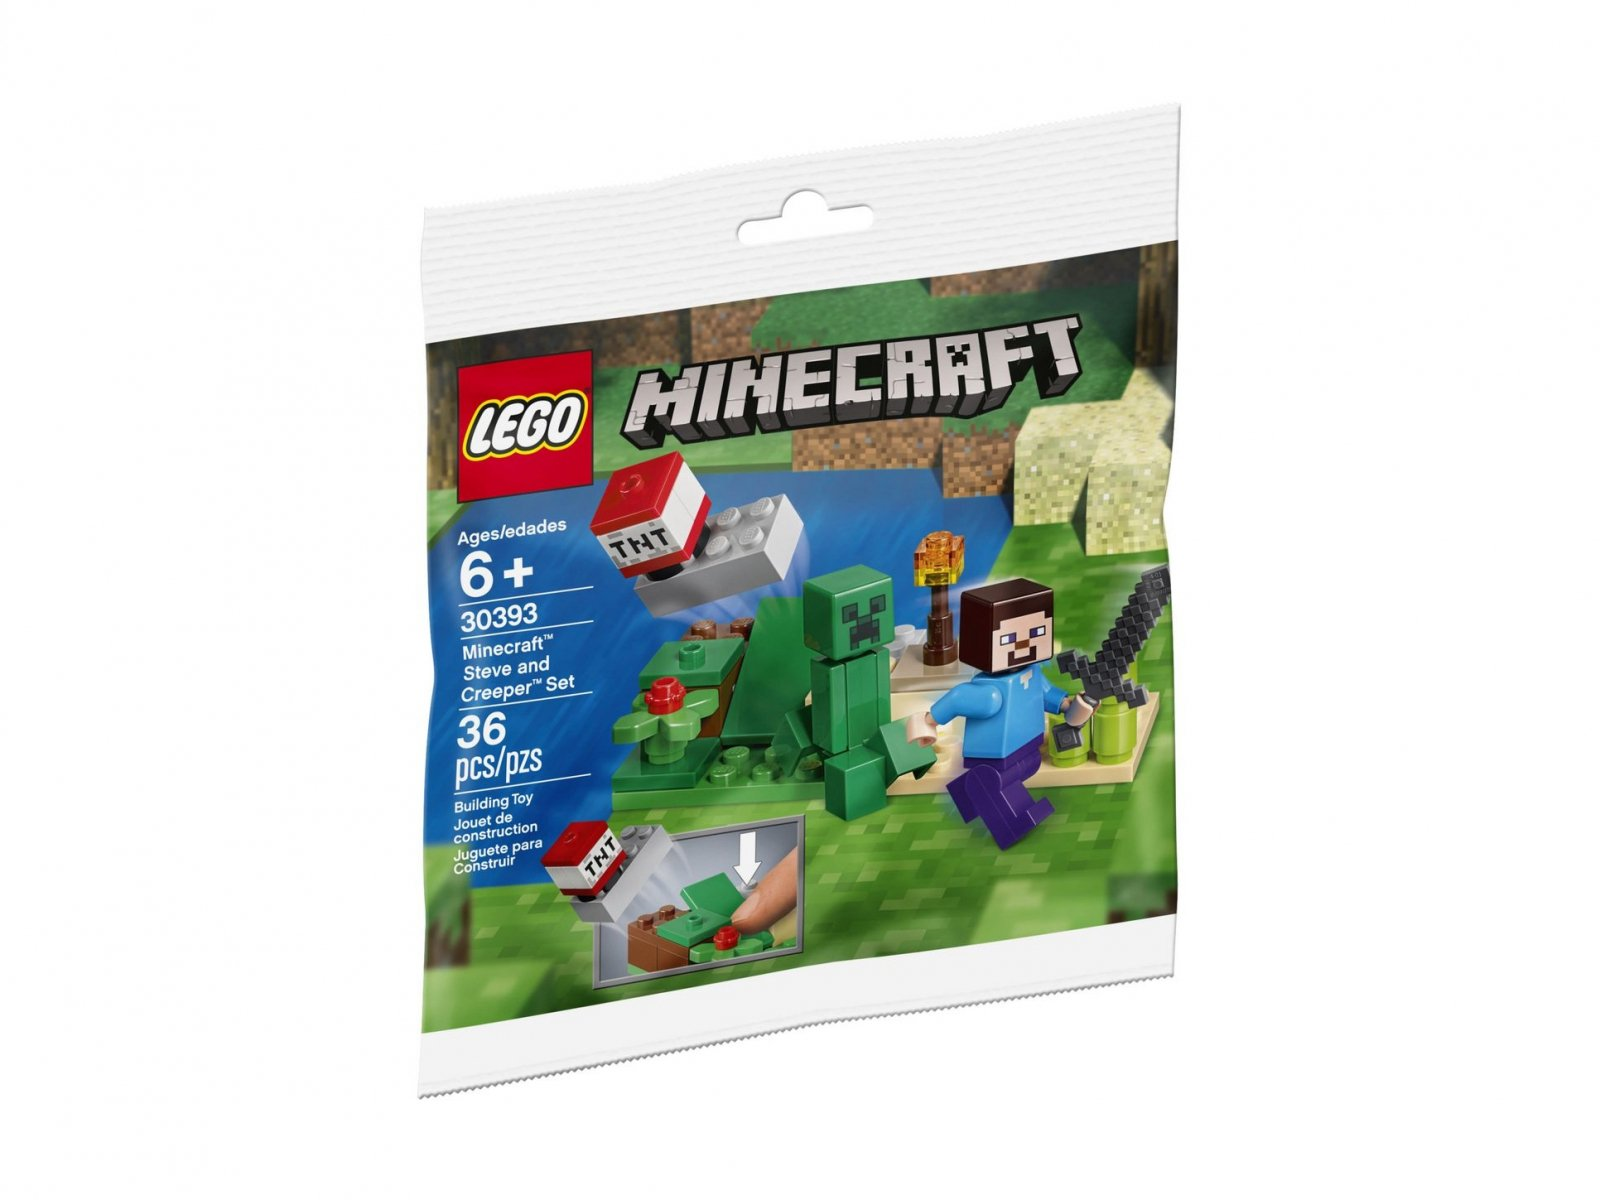 LEGO Minecraft™ Steve and Creeper™ Set 30393